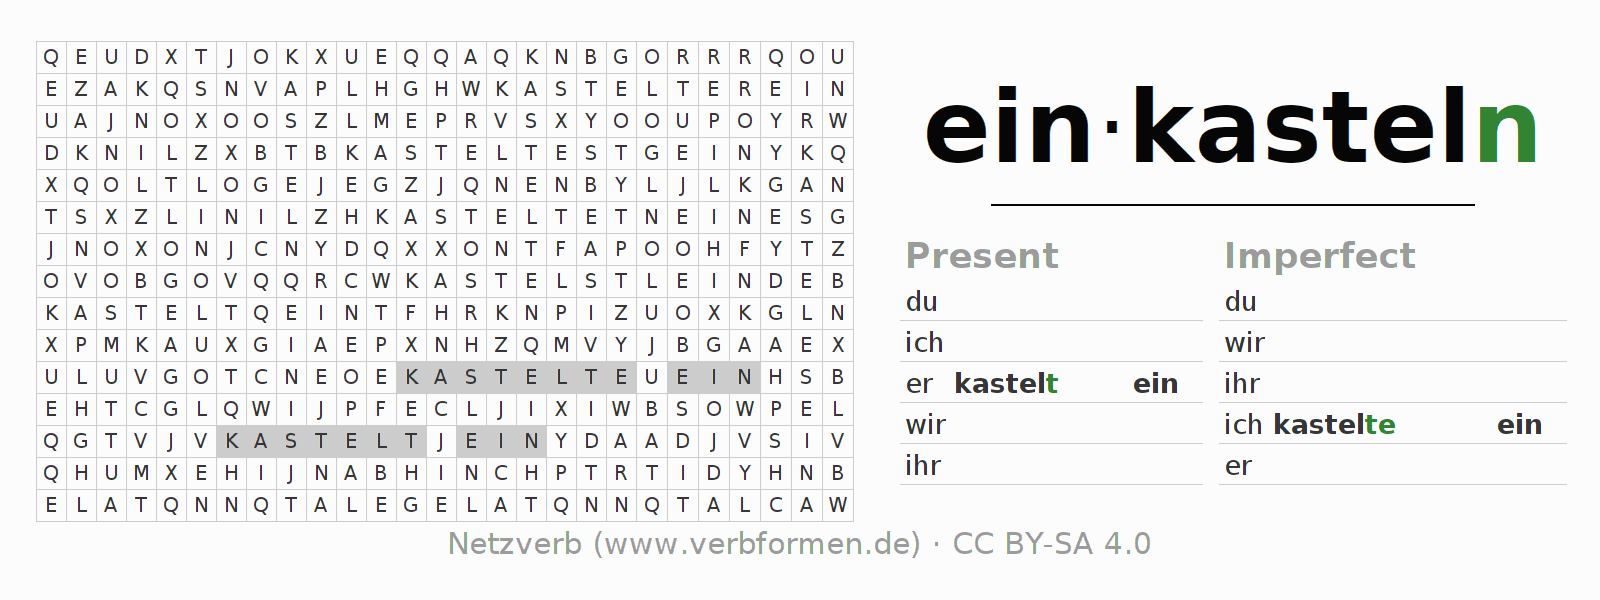 Word search puzzle for the conjugation of the verb einkasteln